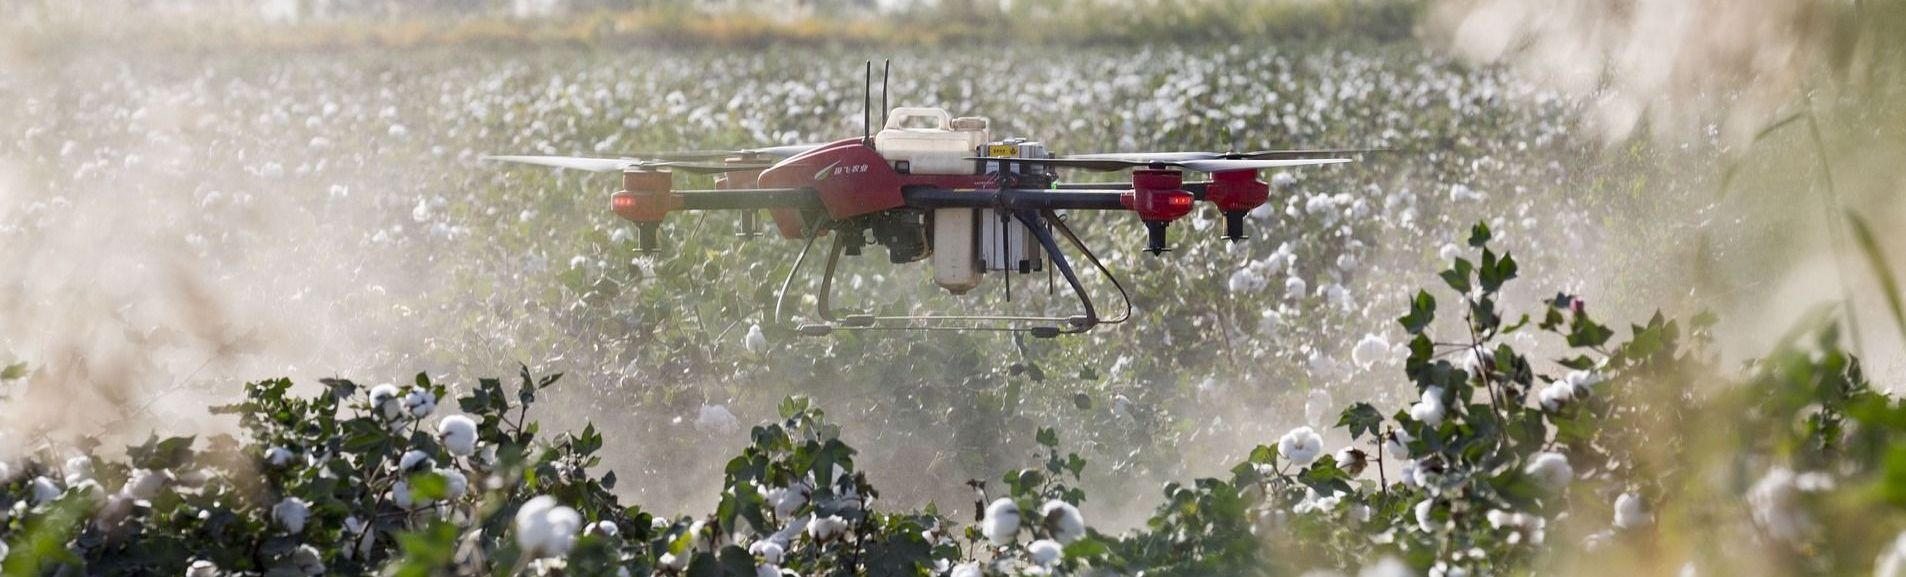 How Drones are Poised to Transform Agriculture